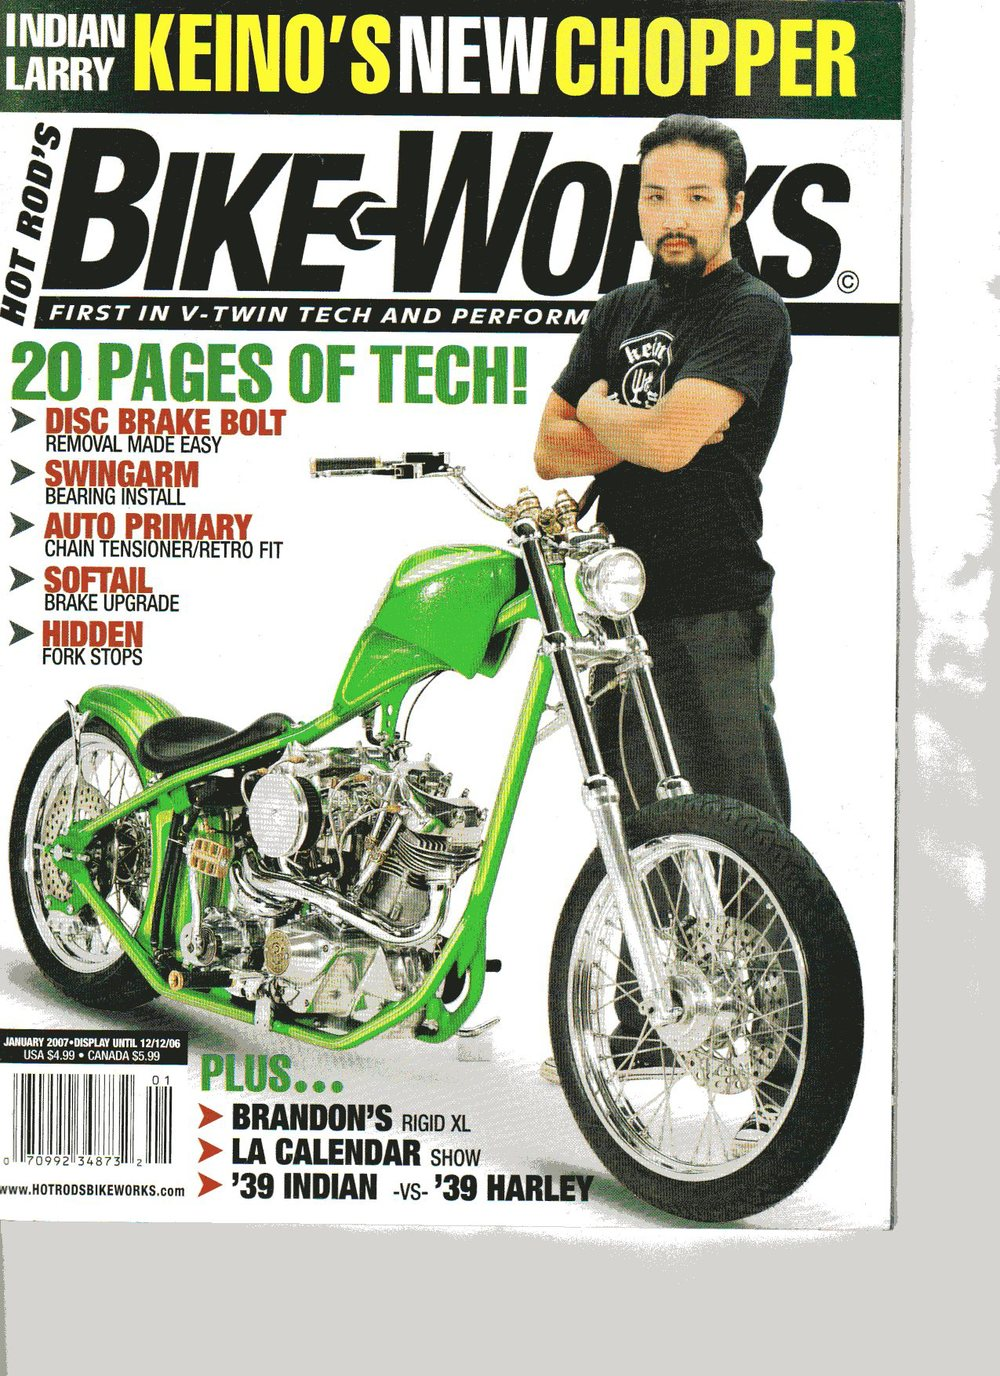 bike works phantom005.jpg